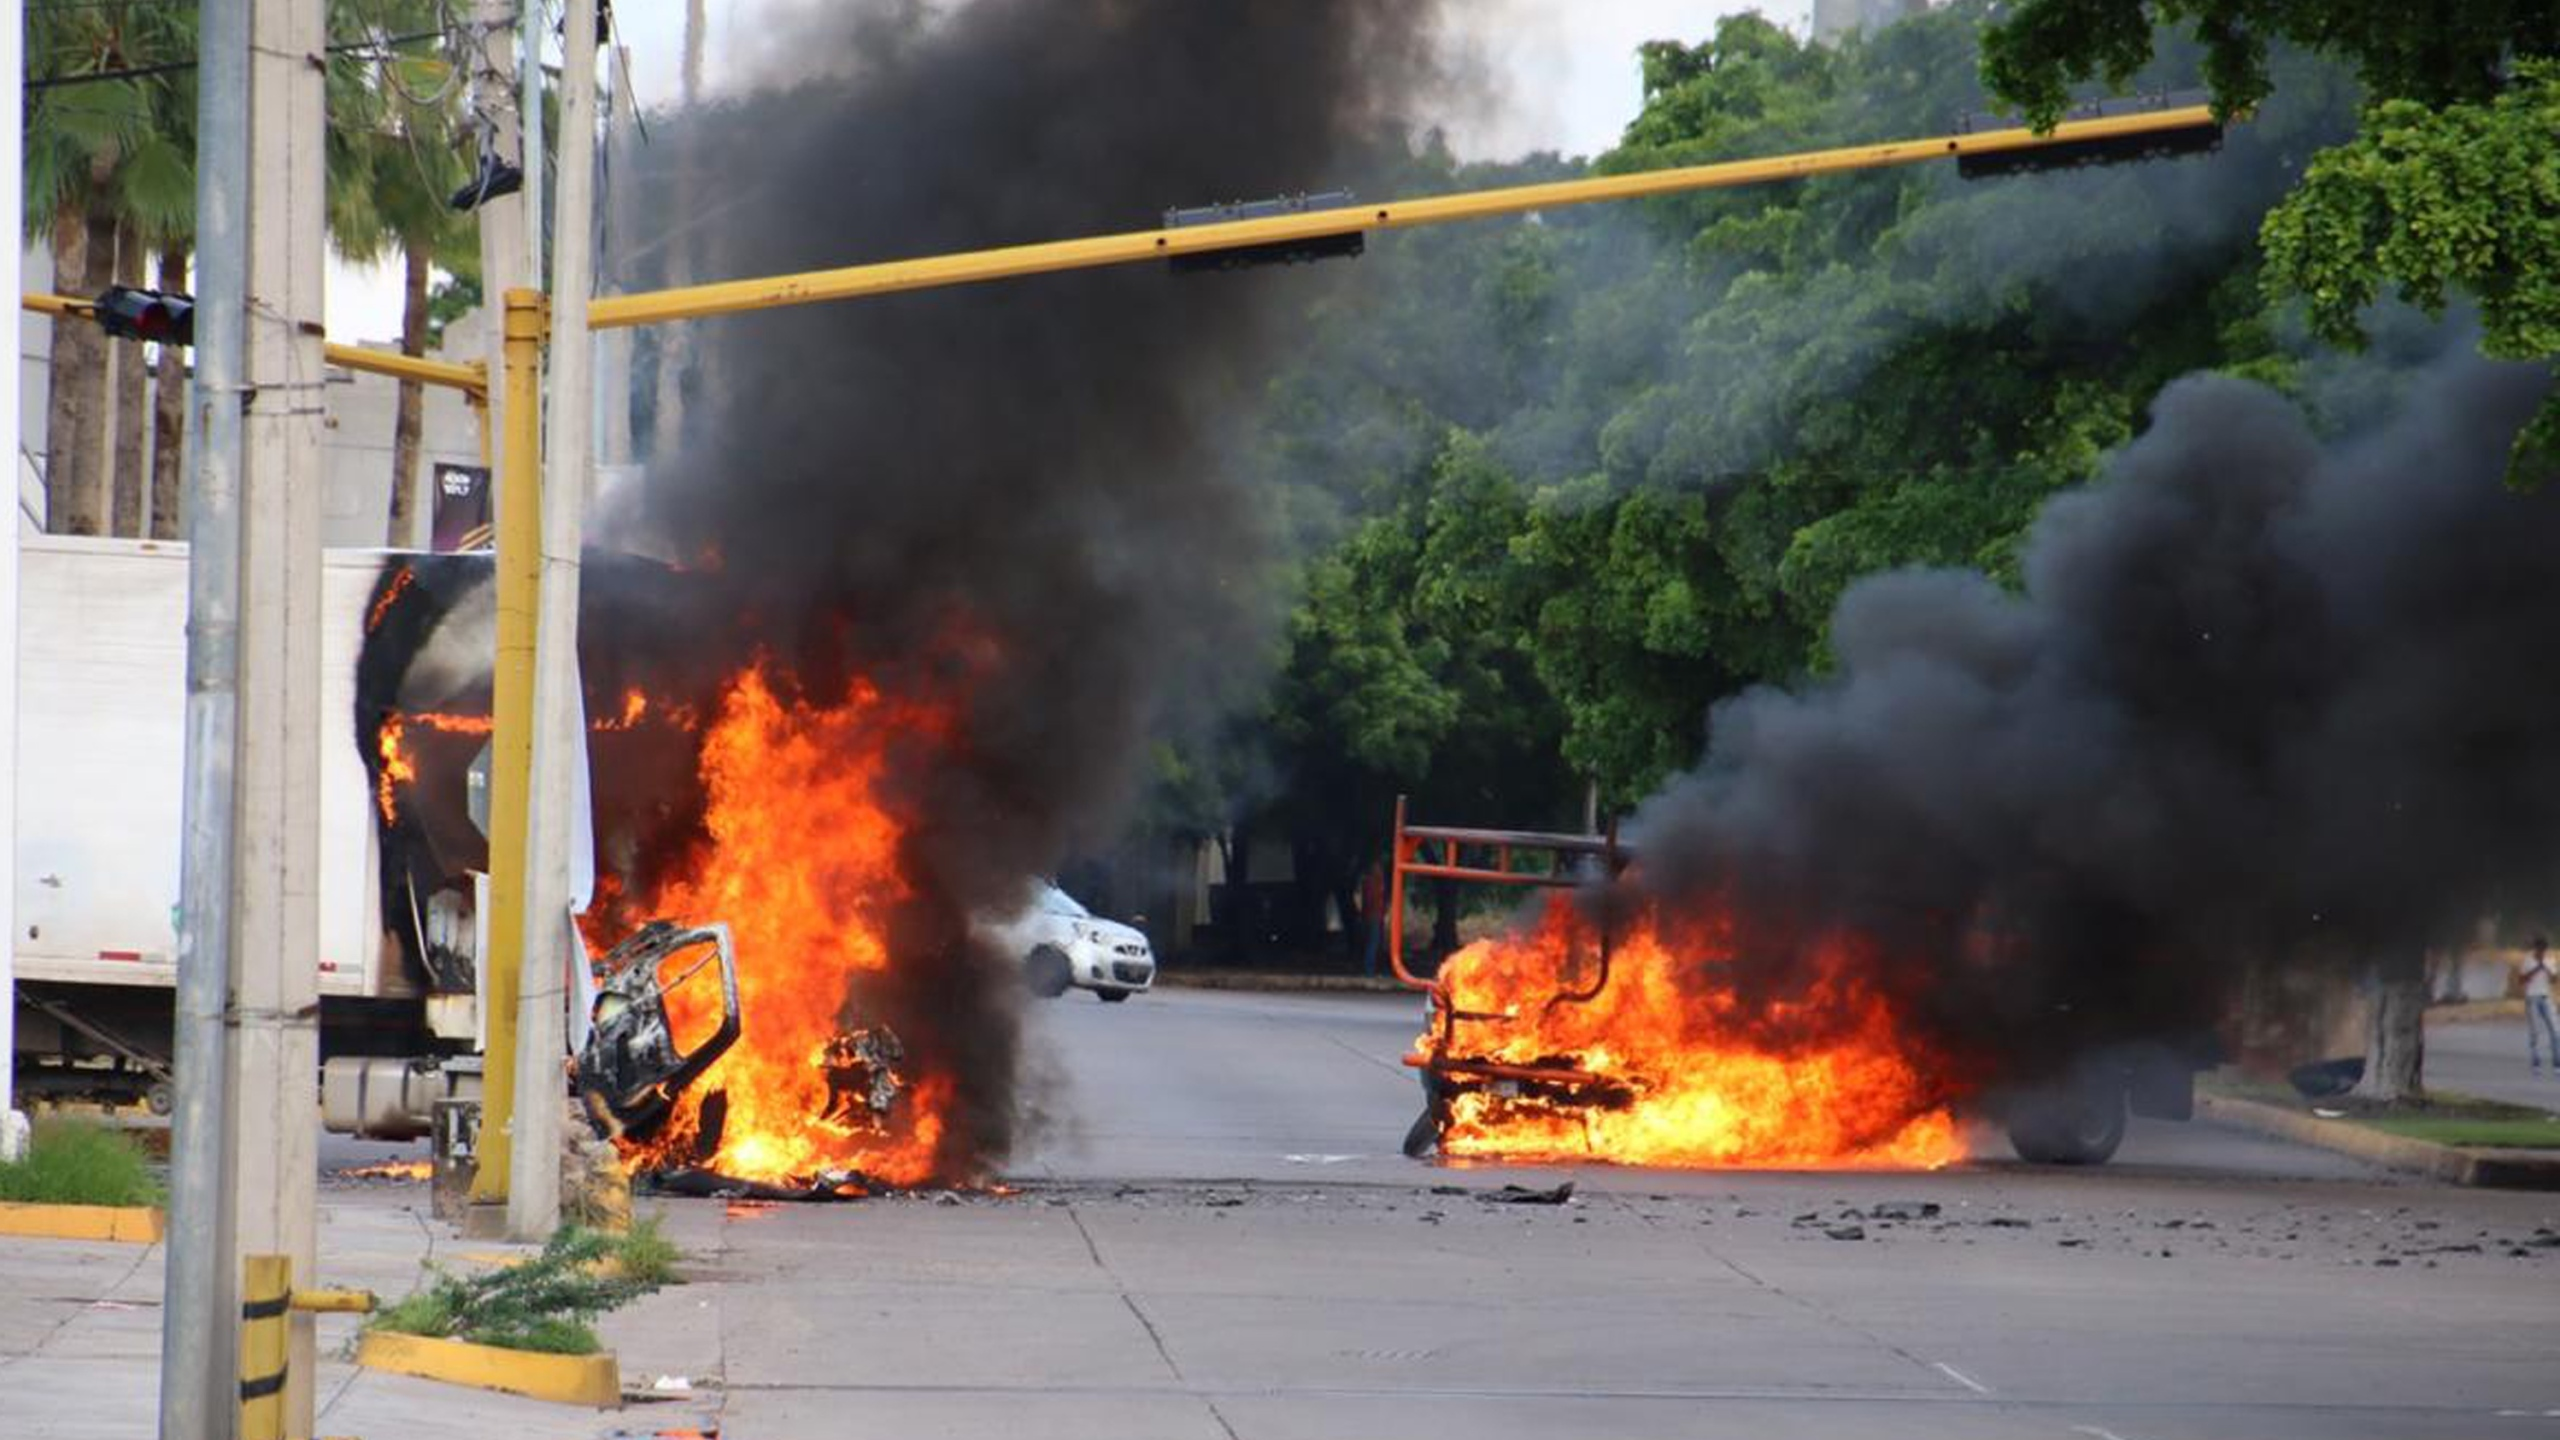 Vehicles burn in a street of Culiacan in Sinaloa state, Mexico, on Oct. 17, 2019.(Credit: STR / AFP via Getty Images)